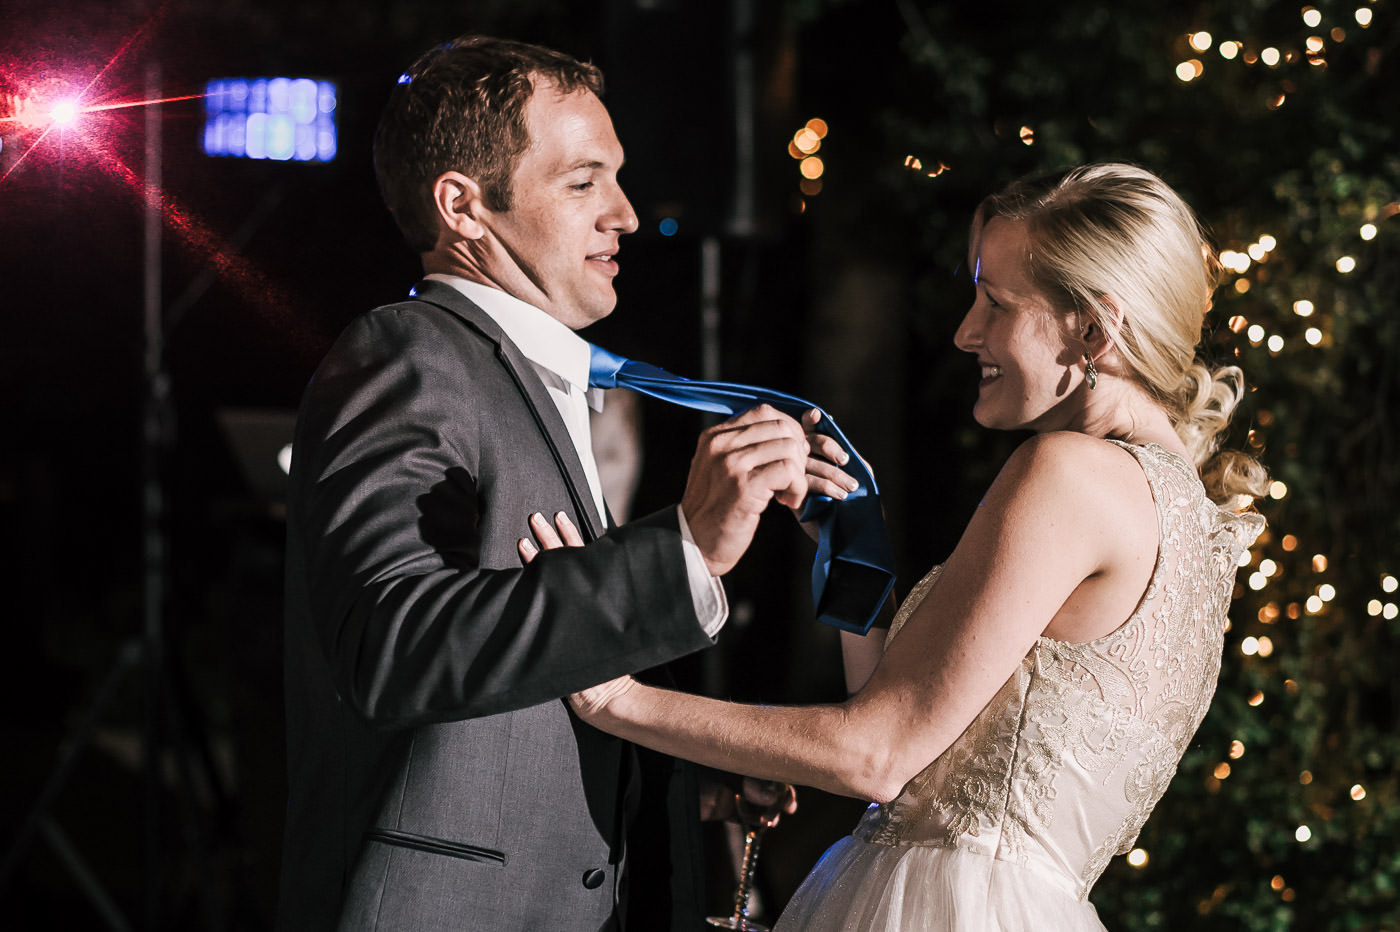 bride and groom have a blast dancing during the reception at their whispering oaks terrace wedding in temecula